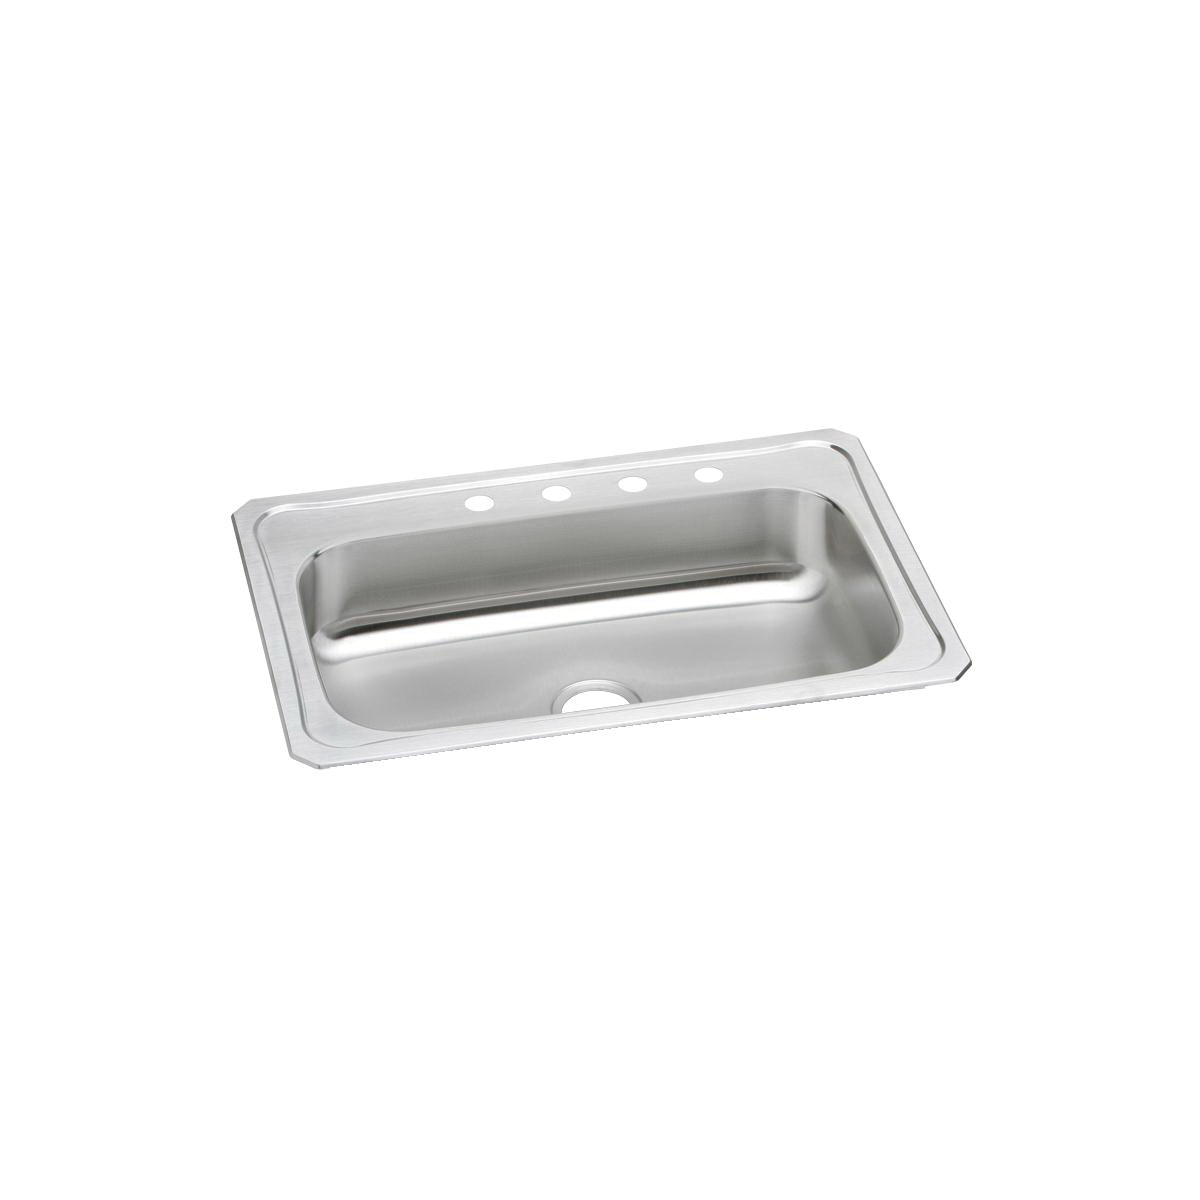 Elkay CRS33224 Celebrity Kitchen Sink, Rectangular, 4 Faucet Holes, 33 in W x 22 in D x 7 in H, Top Mount, Stainless Steel, Brushed Satin